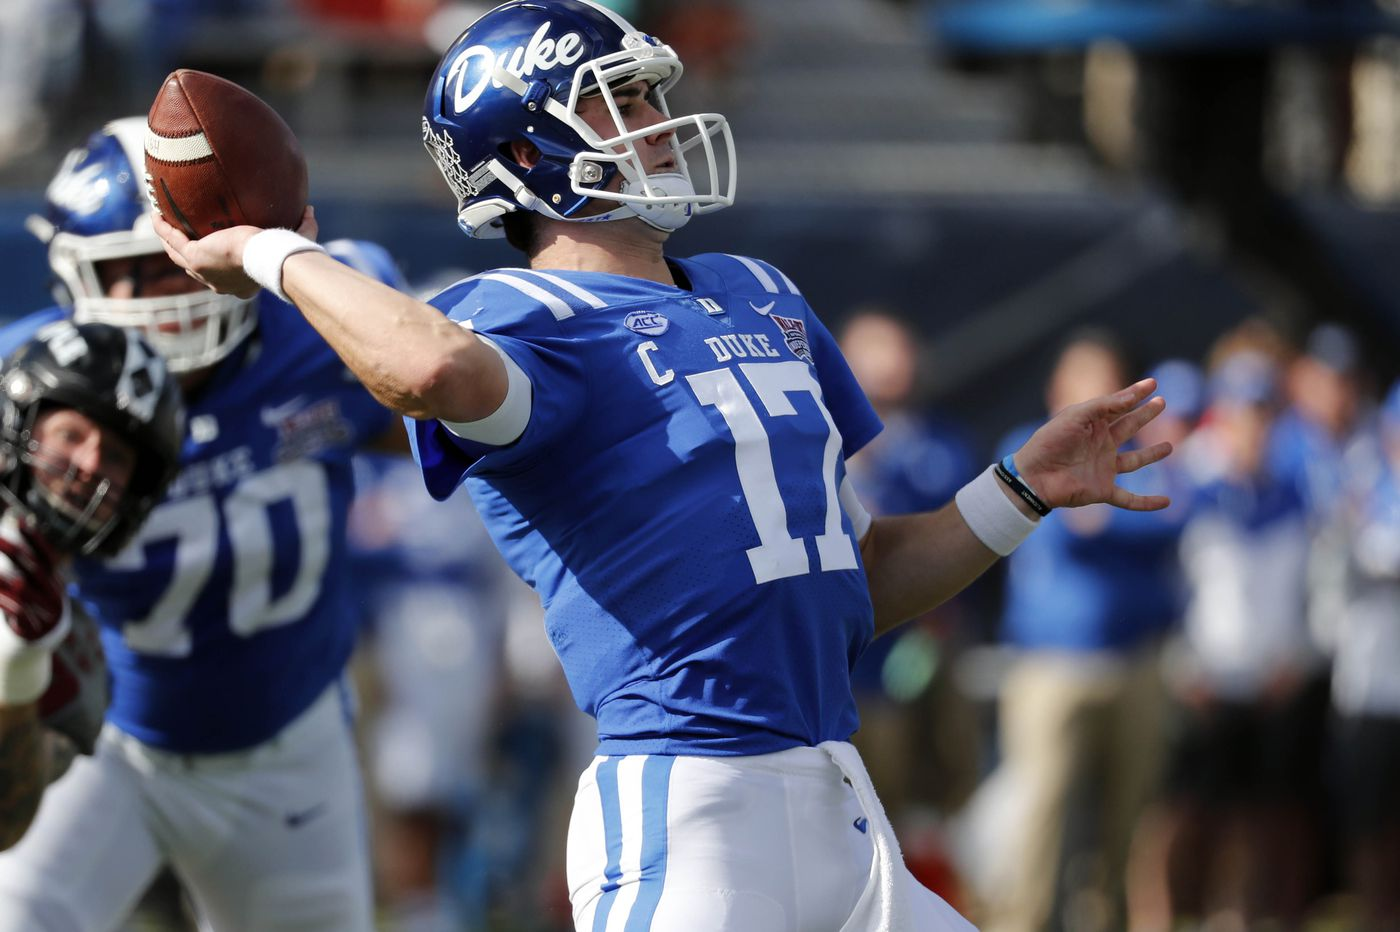 Five Observations from Temple's 56-27 Independence Bowl loss to Duke